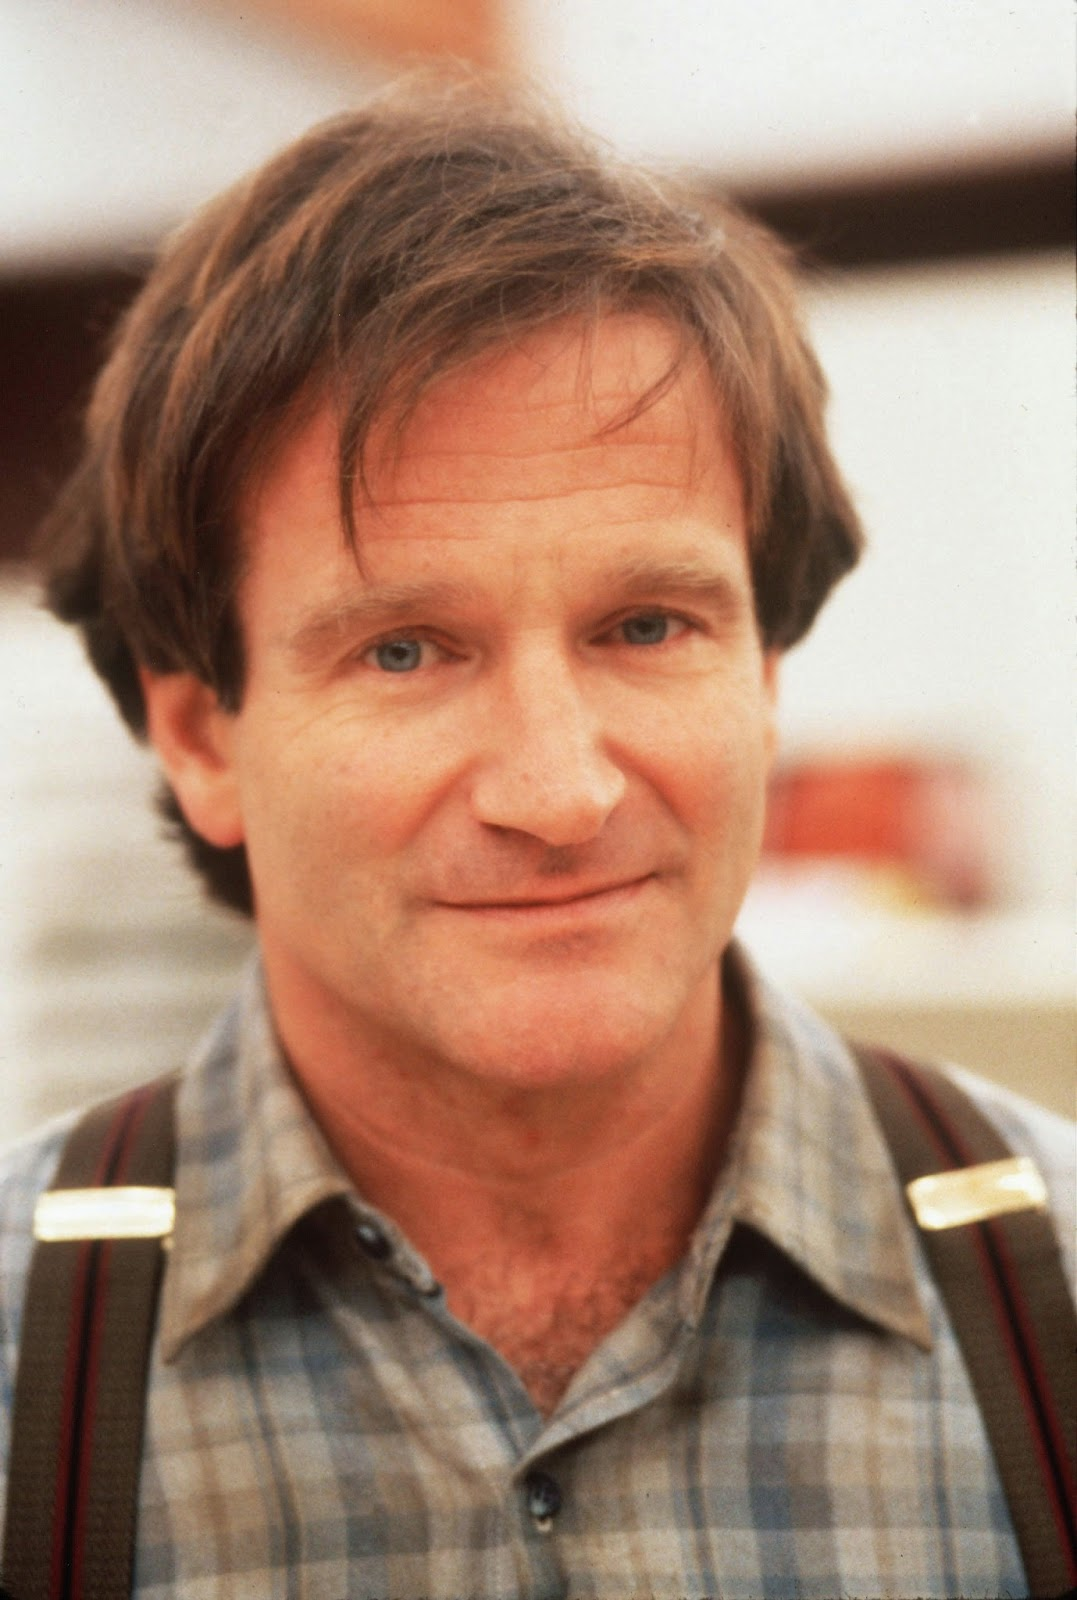 Robin Williams' suicide shatters the world and raises awareness for those suffering depression